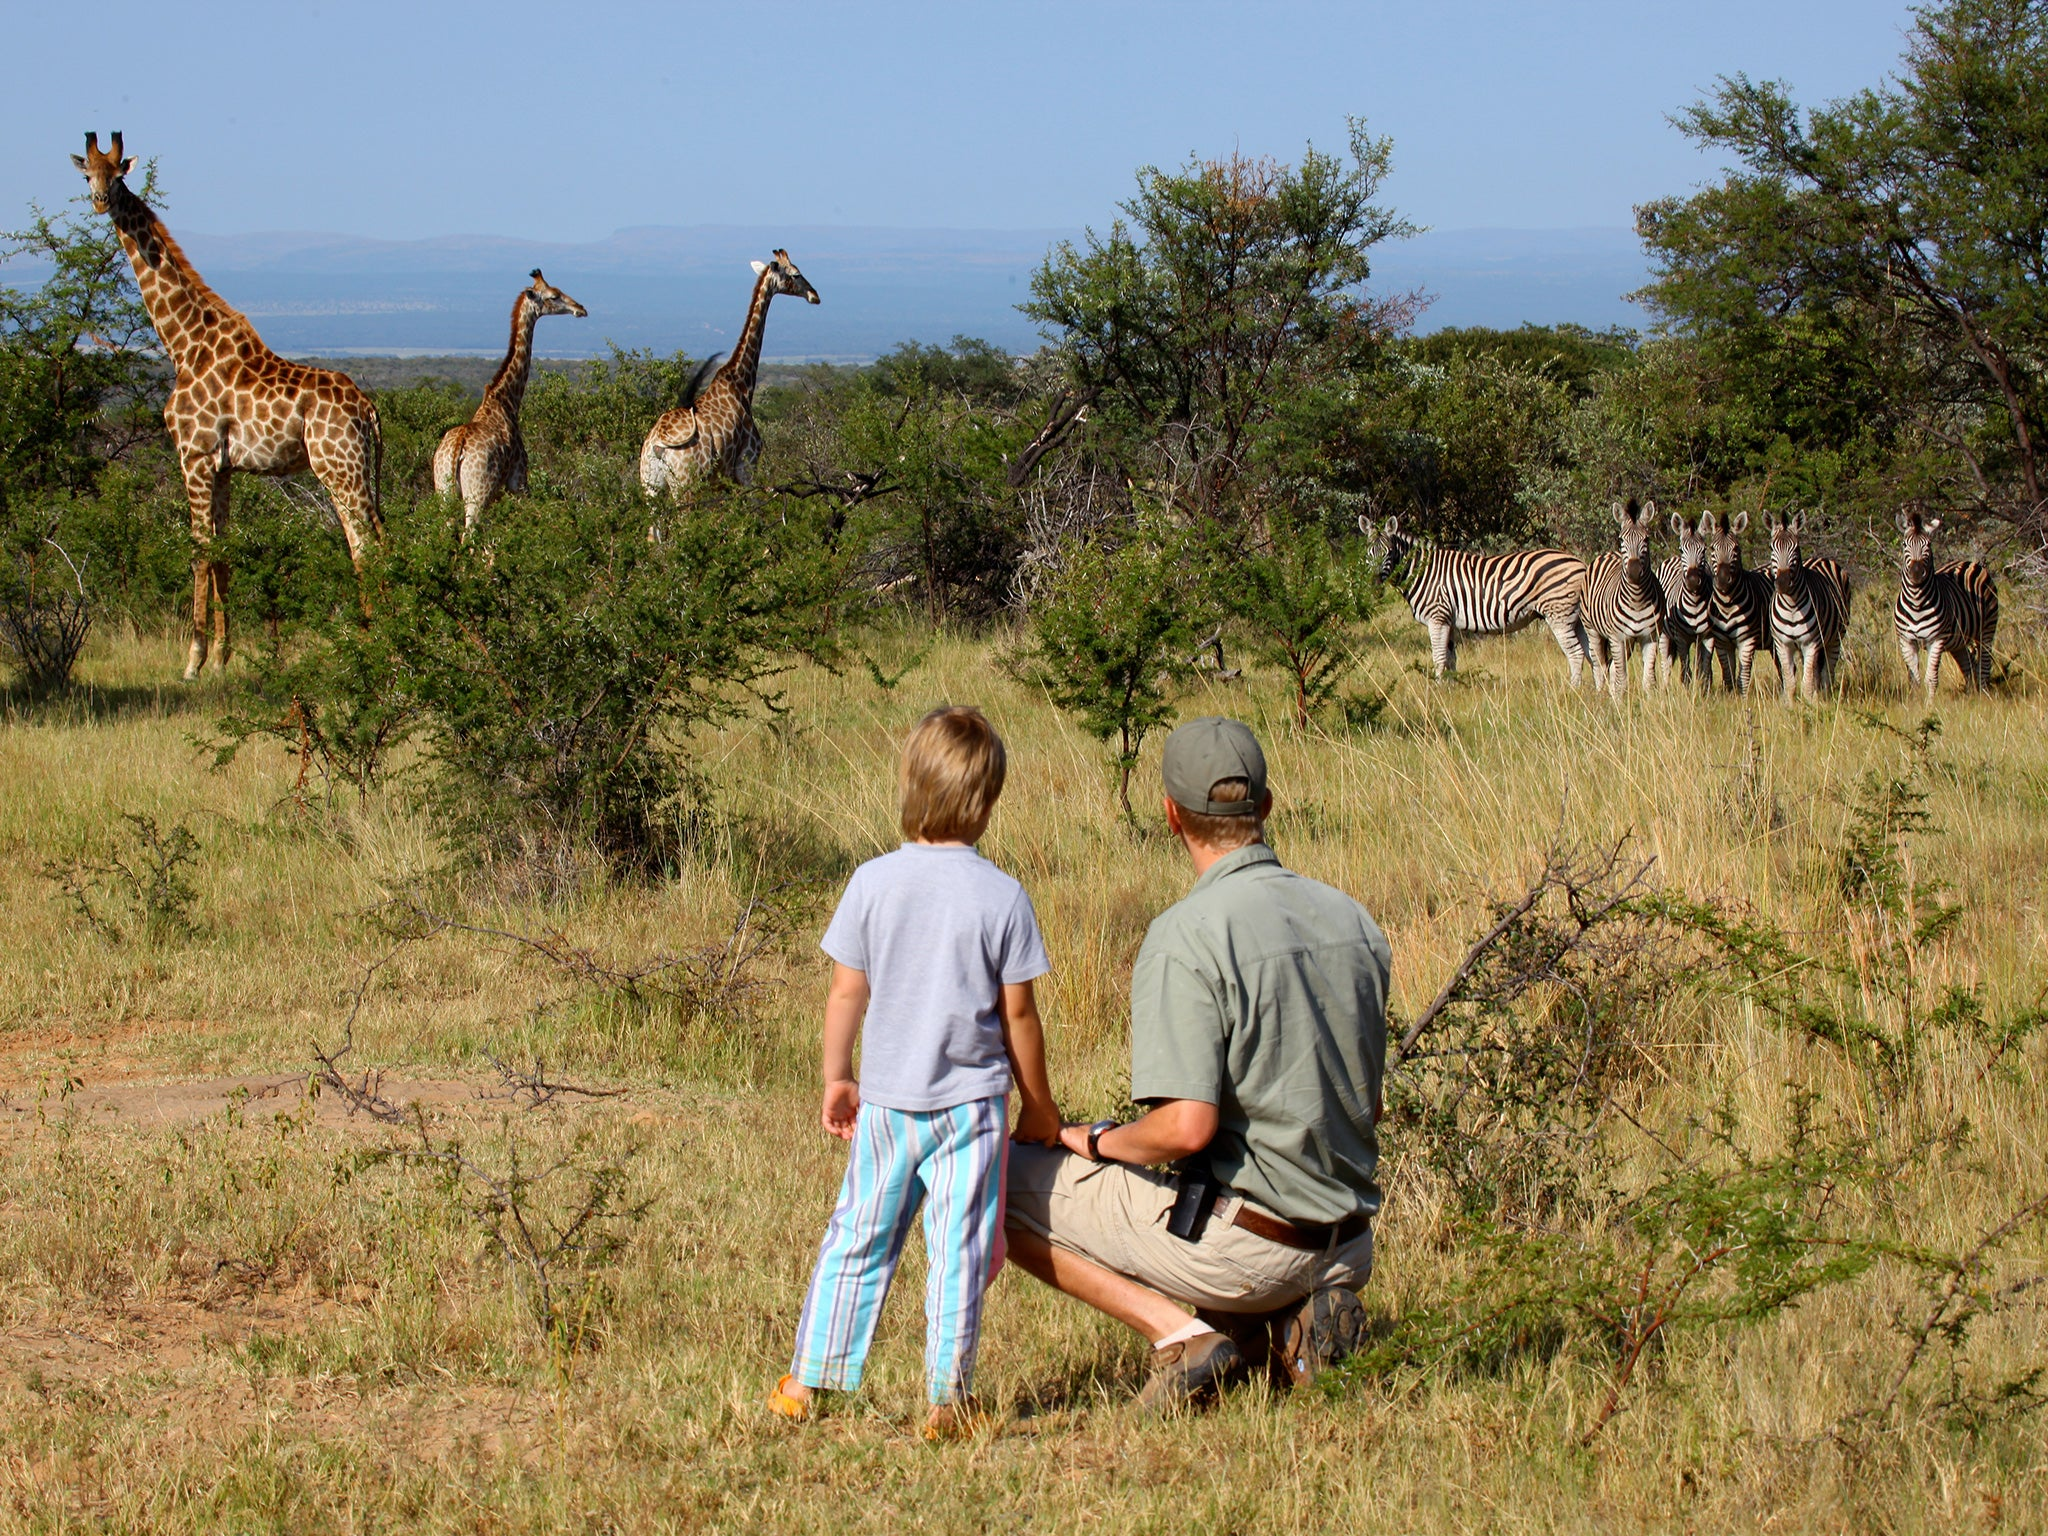 Family safaris: Animal adventures for all ages